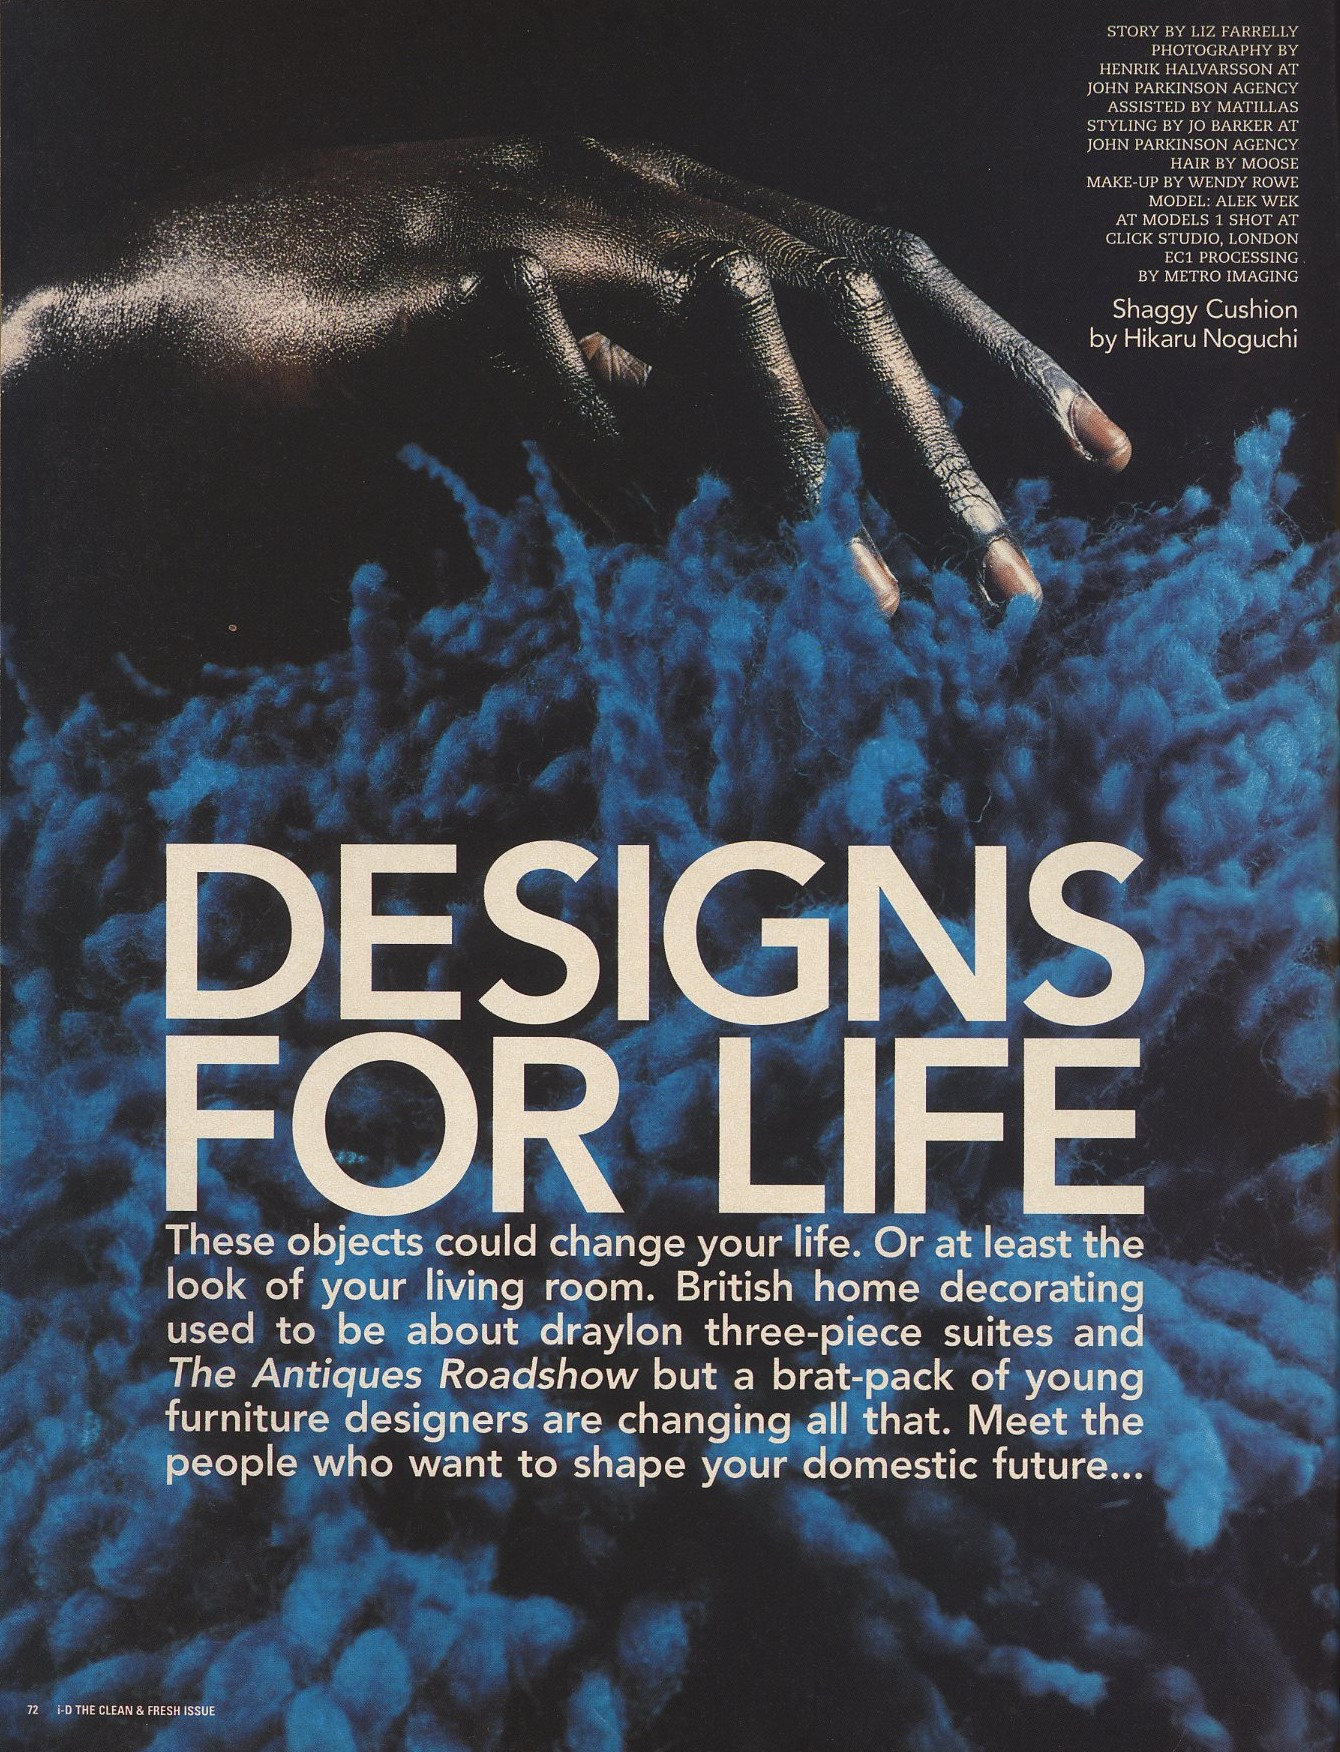 designs for life alek wek photography henrik halvarsson styling jo barker id the clean and fresh issue no 166 july 1997 1